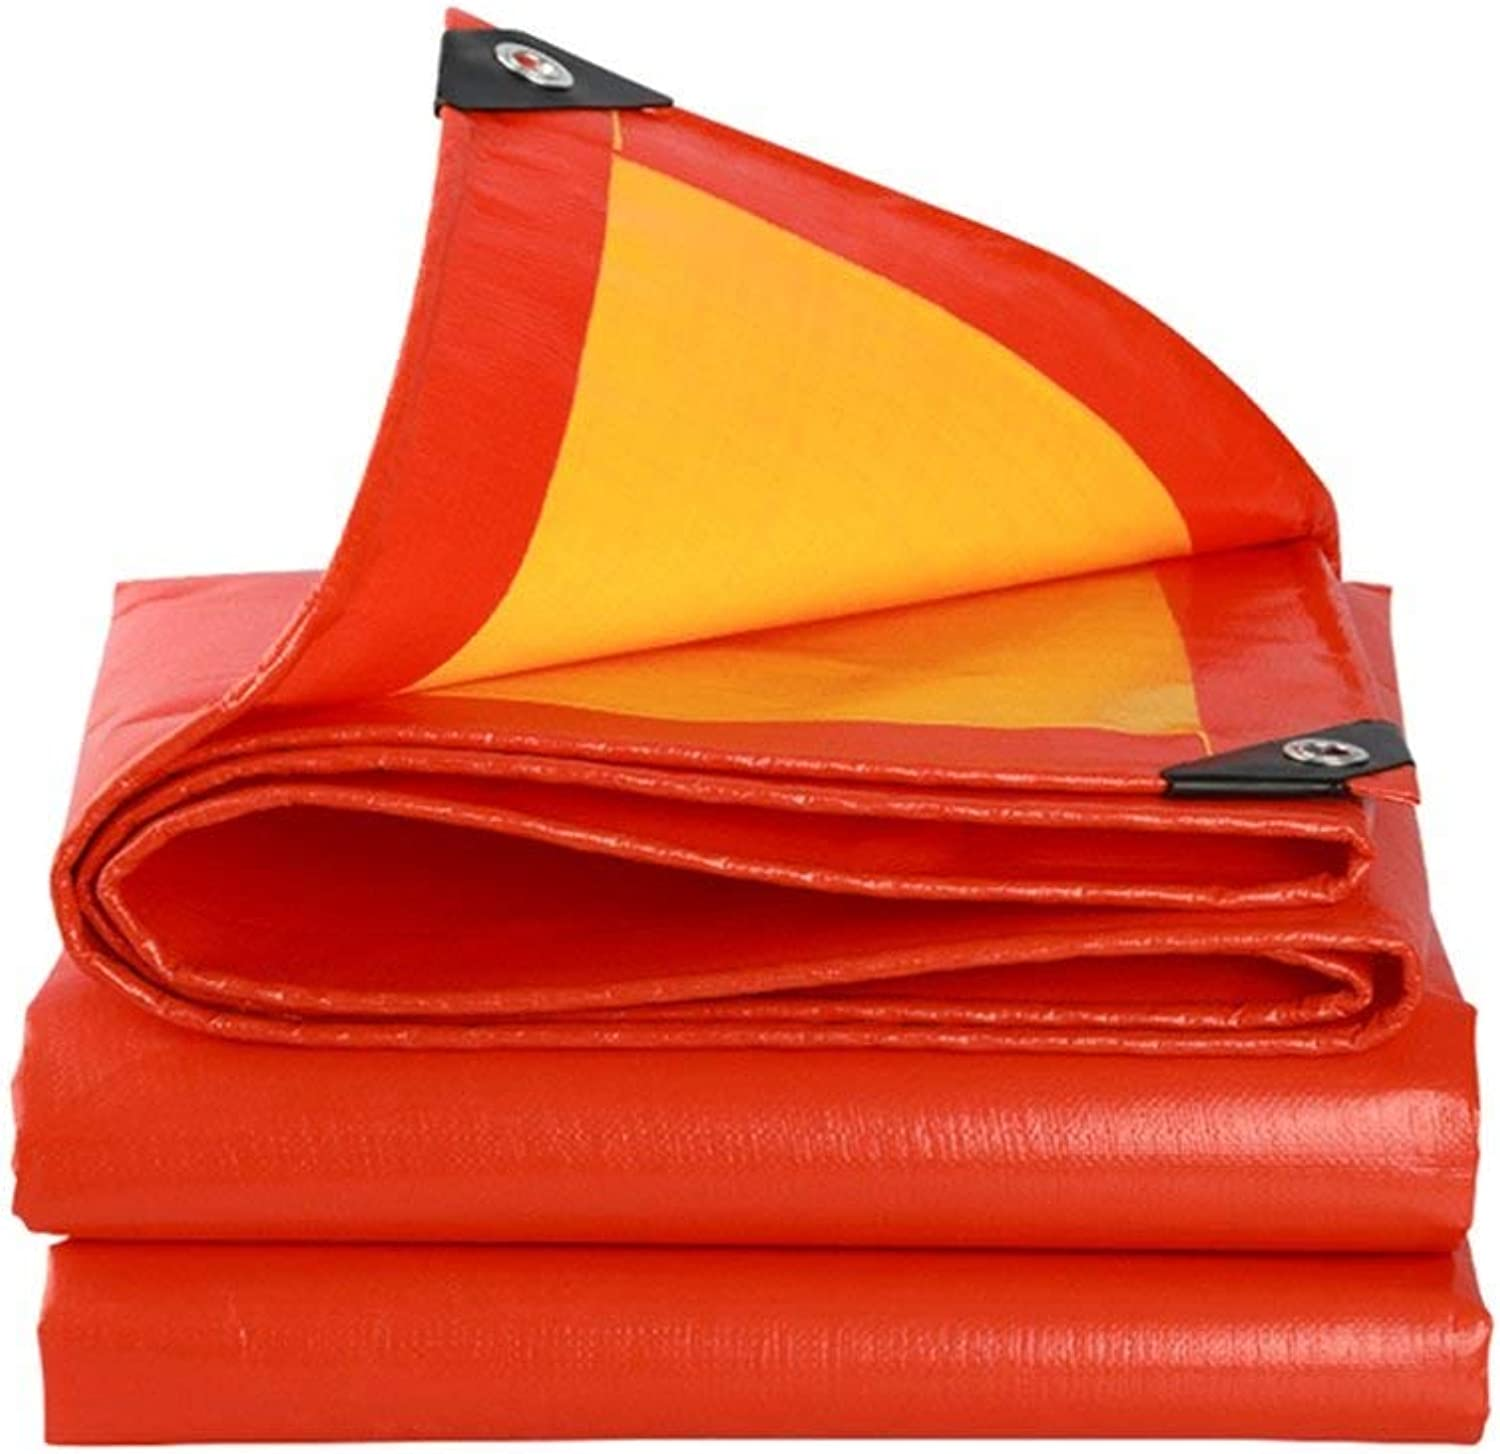 2BRNEBN Tarpaulins Polyethylene Powerful Waterproof Sun Predection Used in Poncho Family Camping Garden Outdoors has Predective Layer,Thickness 0.38mm,210g m2, orange + Yellow, 1